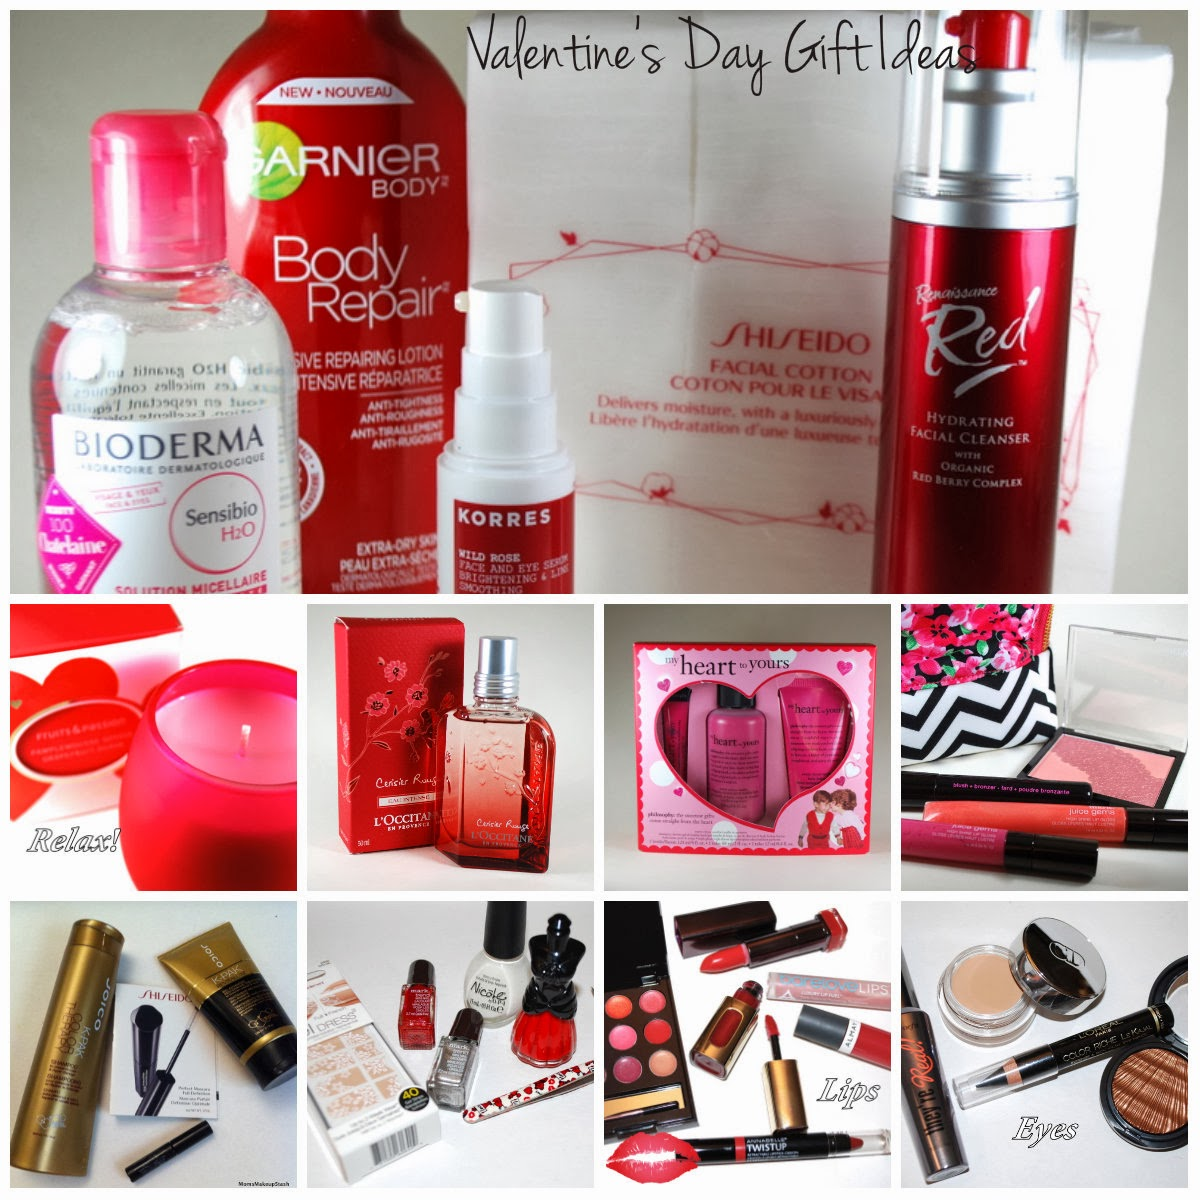 Valentine's Day Gift Ideas, Gift Ideas, Beauty Gift Guide, Valentine's Fragrances, Gift Sets